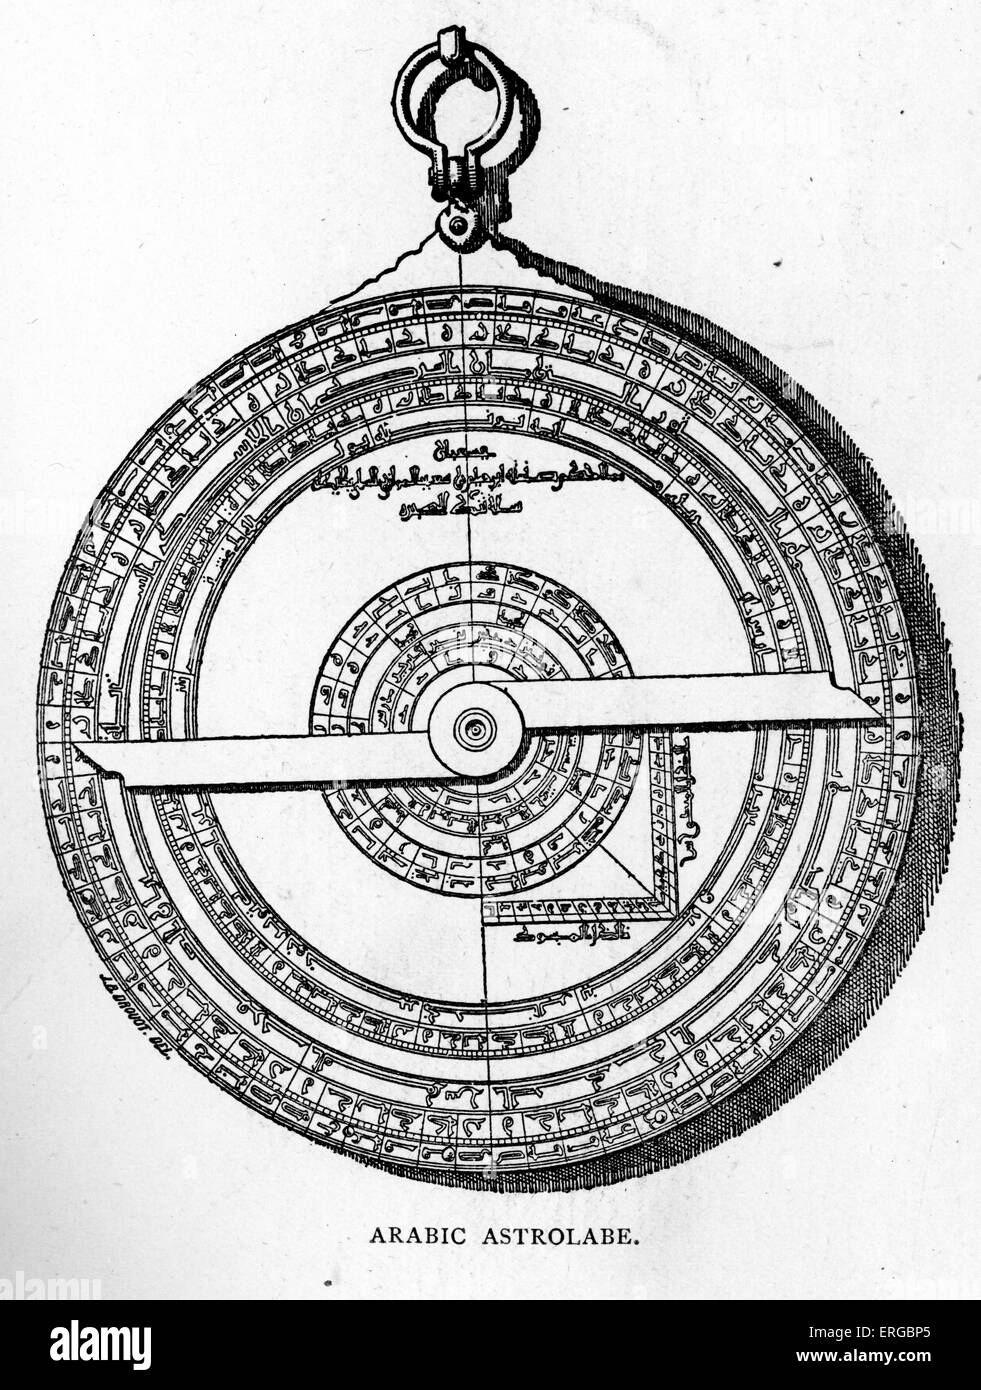 Arabic Astrolabe. Instrument  historically used by astronomers and  navigators to locate  the positions of the Sun, - Stock Image